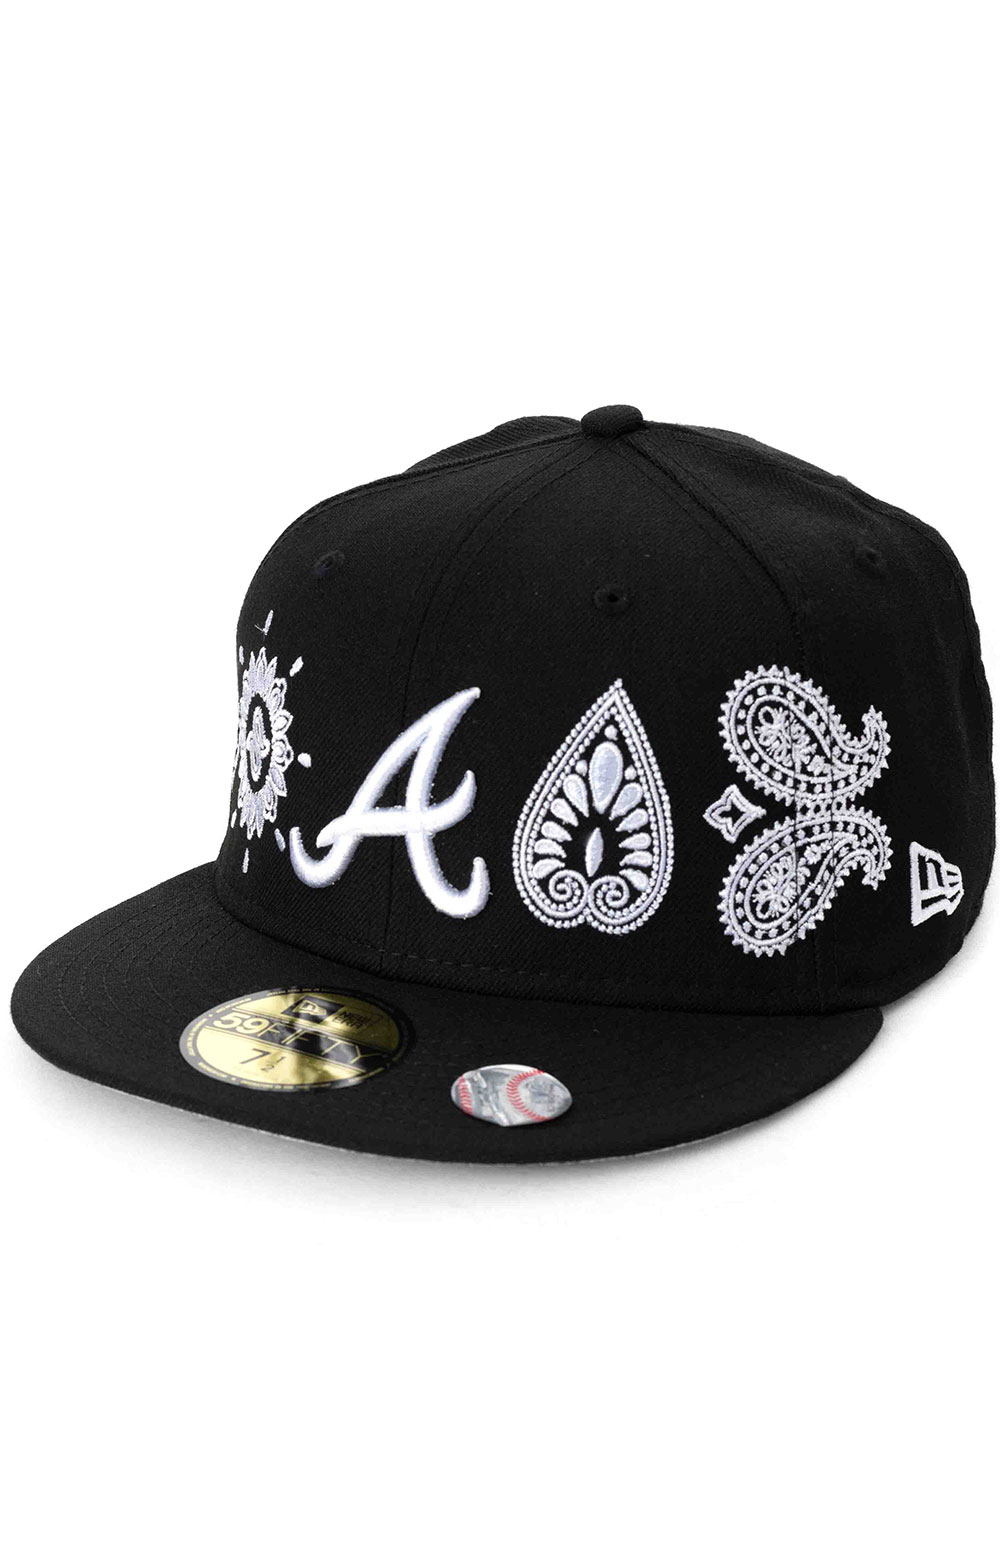 Atlanta Braves Paisley Elements 59Fifty Fitted Hat - Black